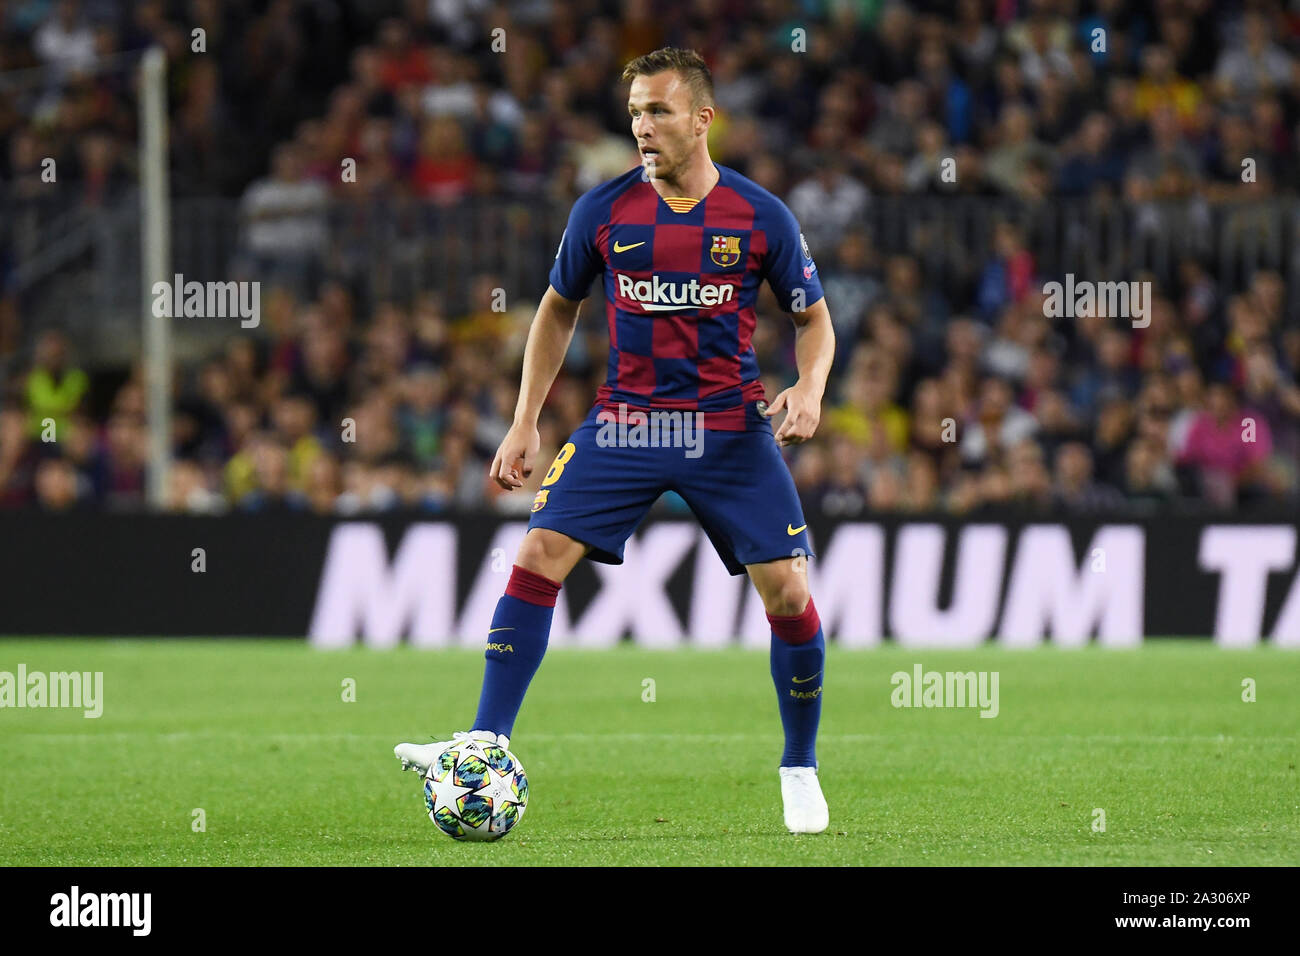 arthur melo of fc barcelona during the match fc barcelona v juventus fc of uefa womens champions league 2019 2020 season round of 32 johan cruyff stadium barcelona spain 25 sep 2019 stock photo alamy https www alamy com arthur melo of fc barcelona during the match fc barcelona v juventus fc of uefa womens champions league 20192020 season round of 32 johan cruyff stadium barcelona spain 25 sep 2019 image328846414 html